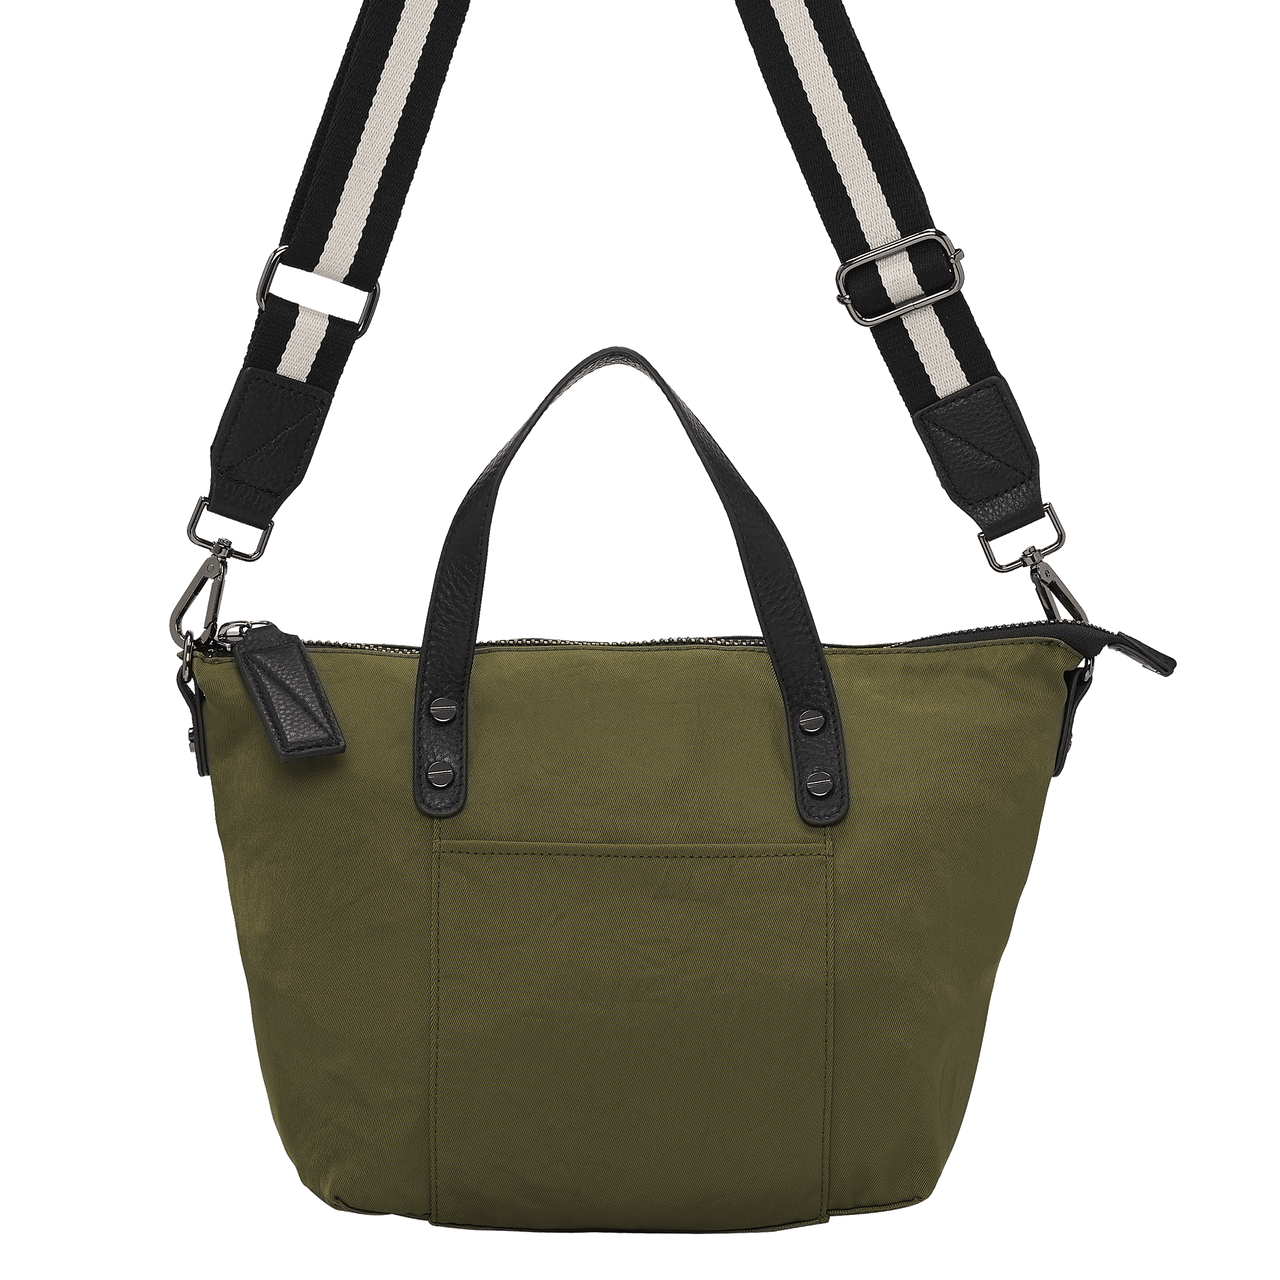 BEXLEY SMALL NYLON CARRYALL - KHAKI